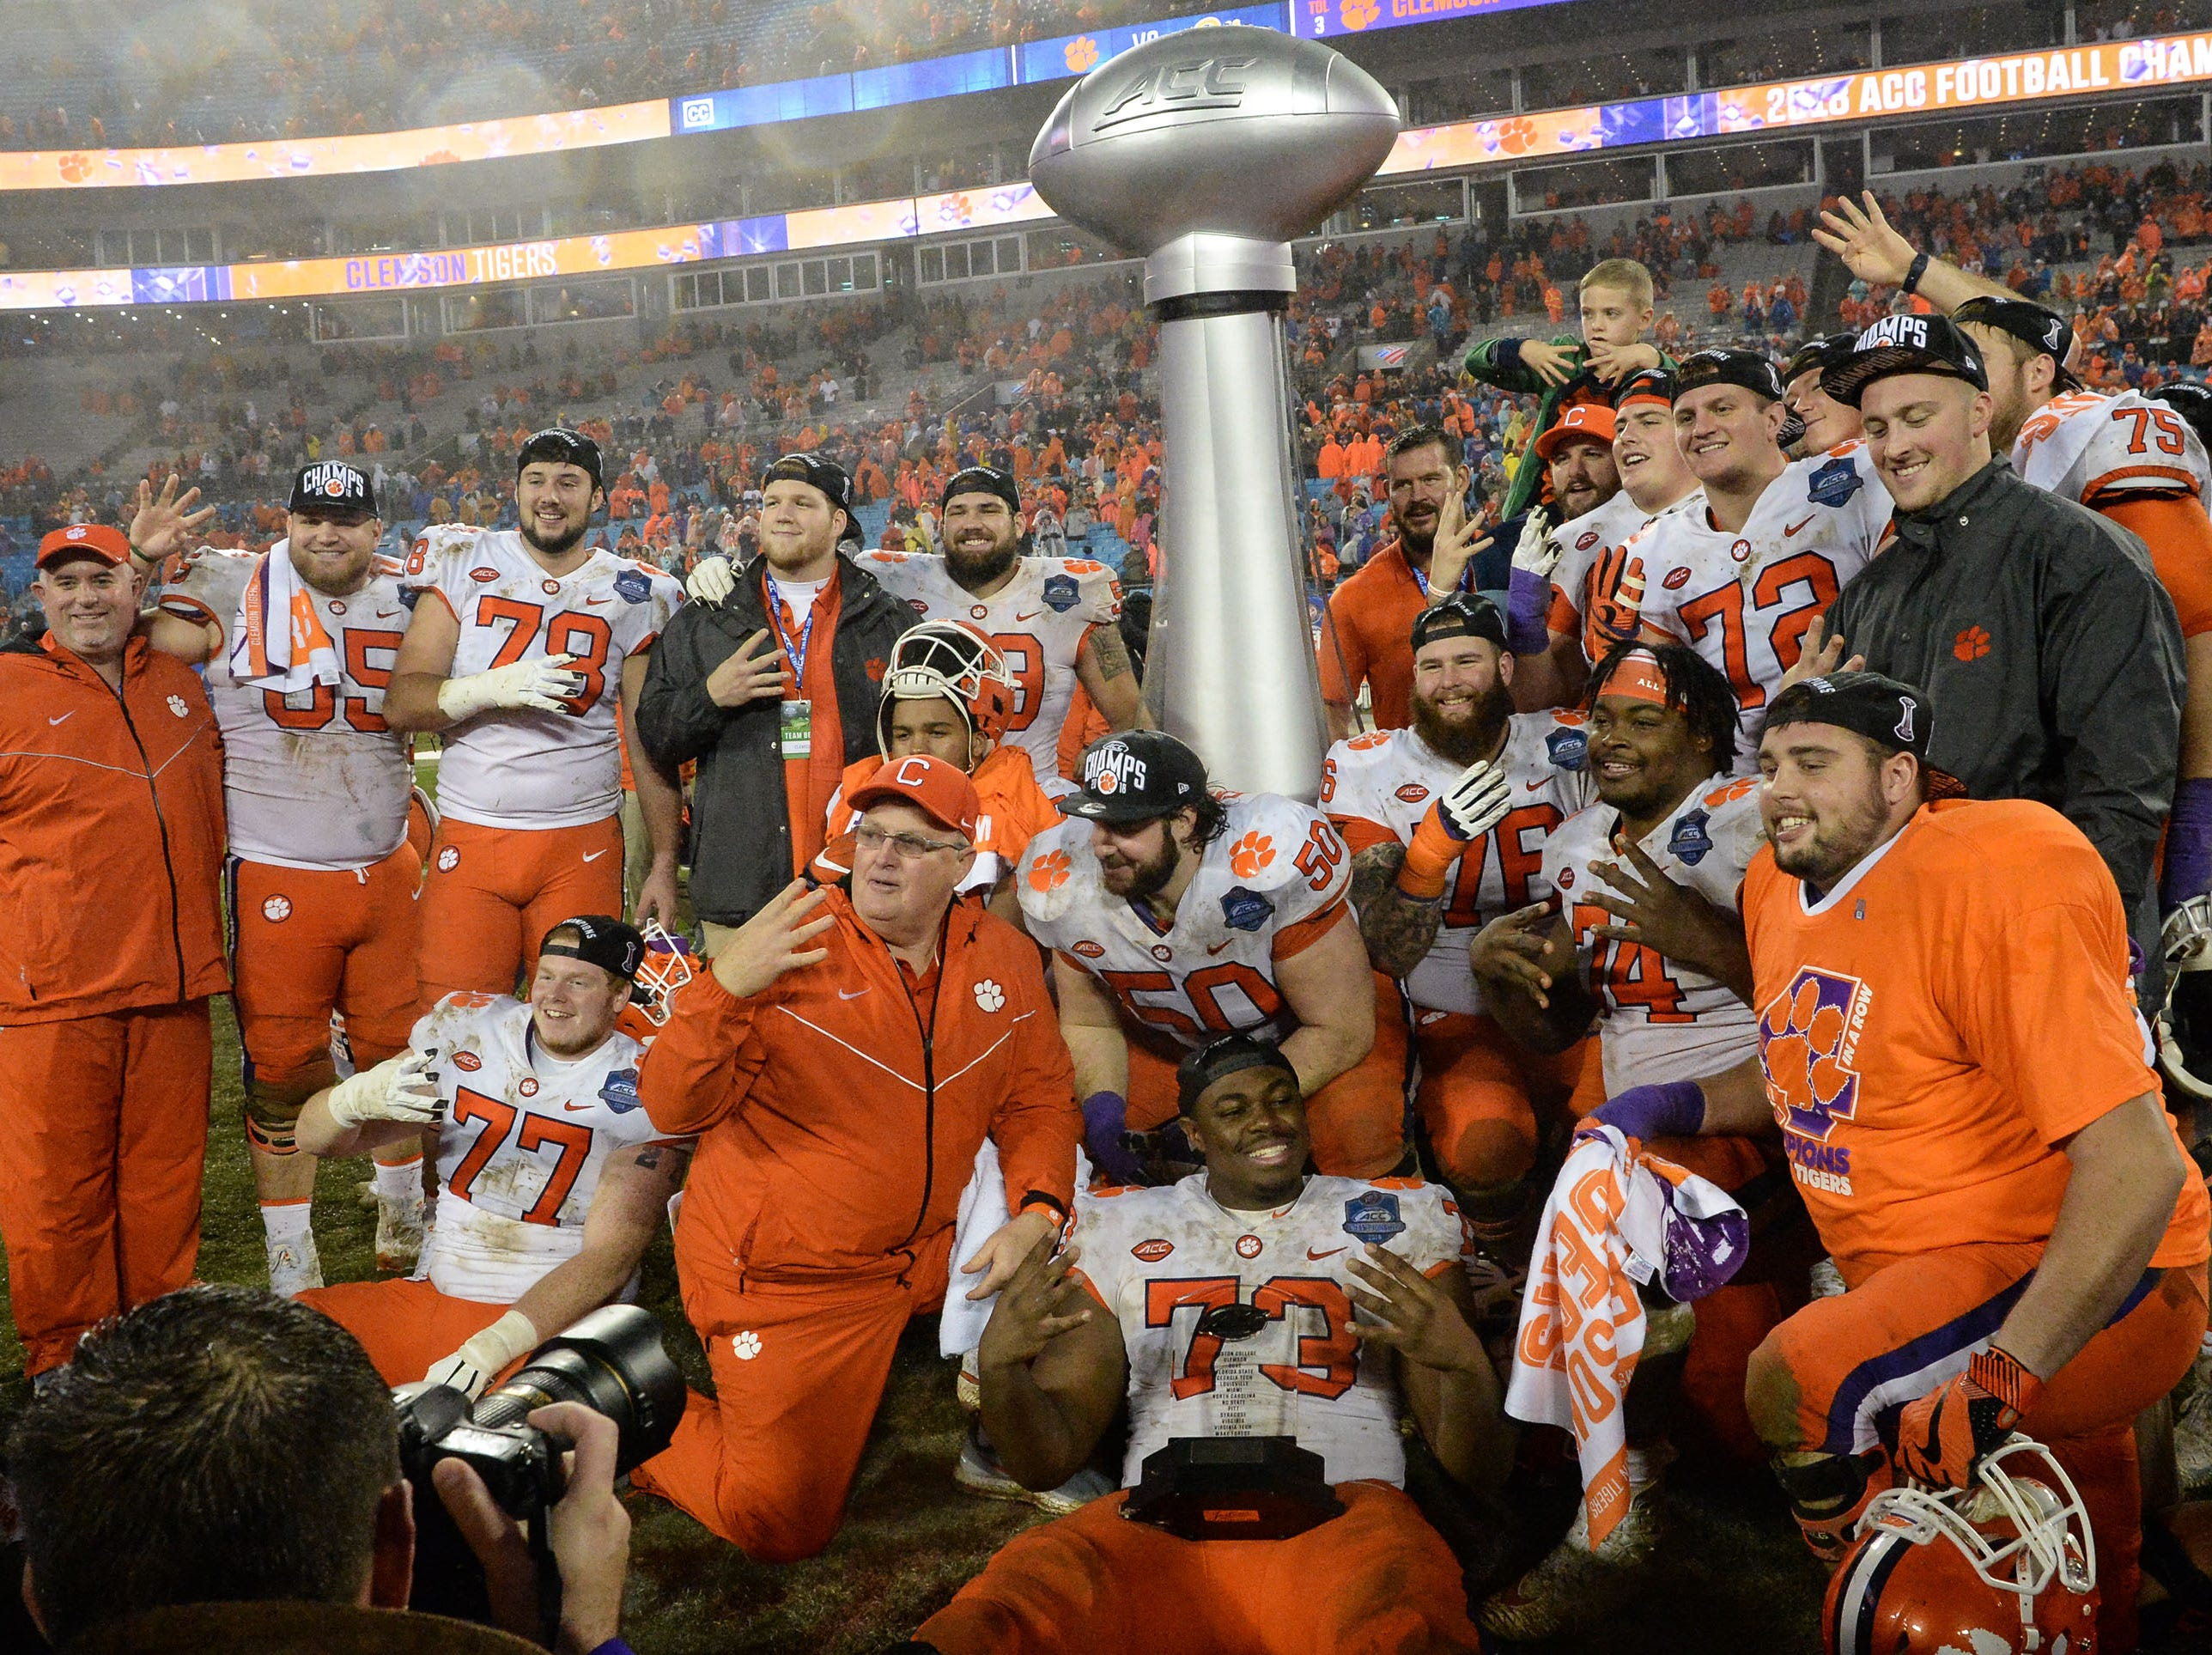 Clemson offensive linemen pose for a photo after the win over Pitt.